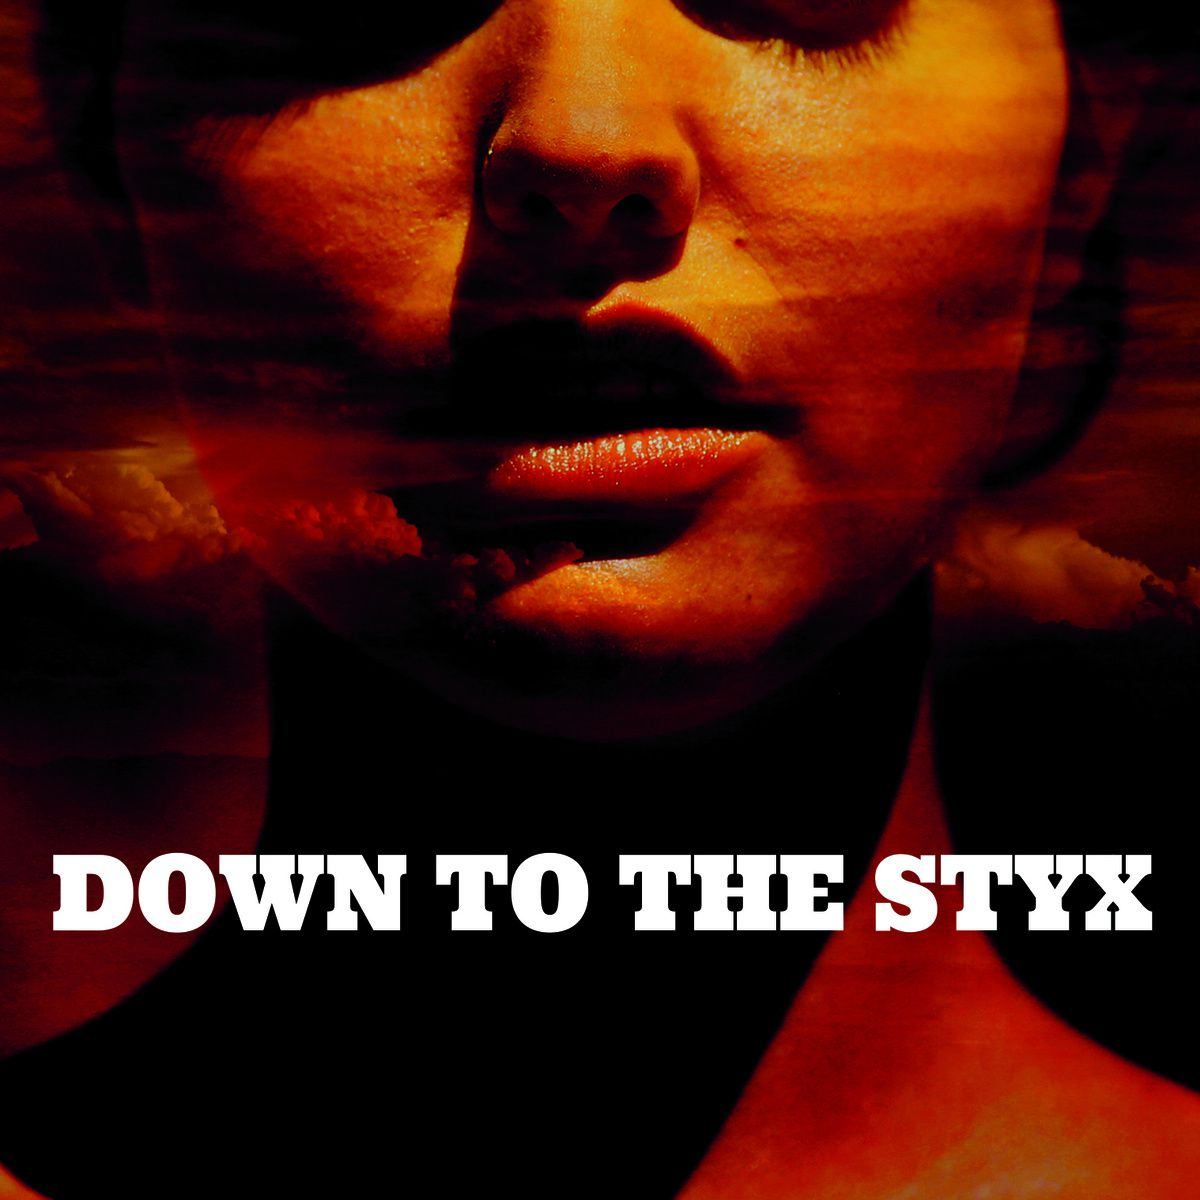 CROOK AND THE BLUFF - Down to the styx (2015)